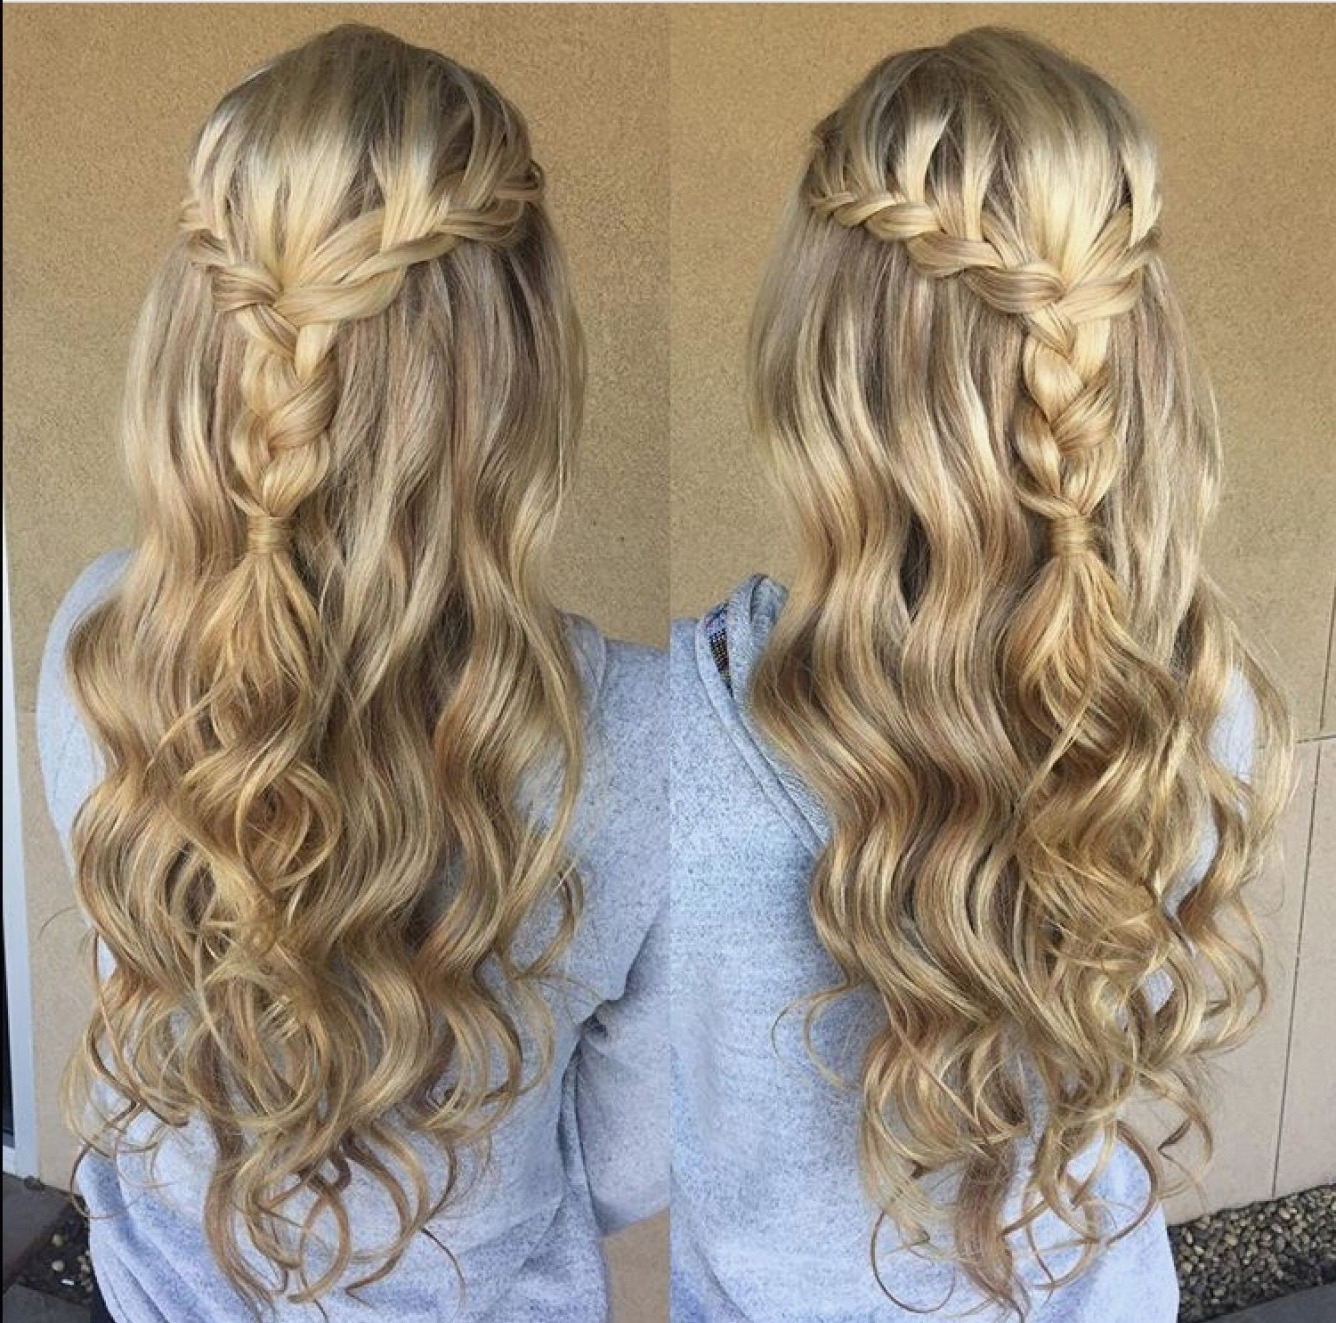 Braid Hairstyles : Cool Half Up Half Down Braided Prom Hairstyles Regarding Current Half Up And Braided Hairstyles (View 11 of 15)